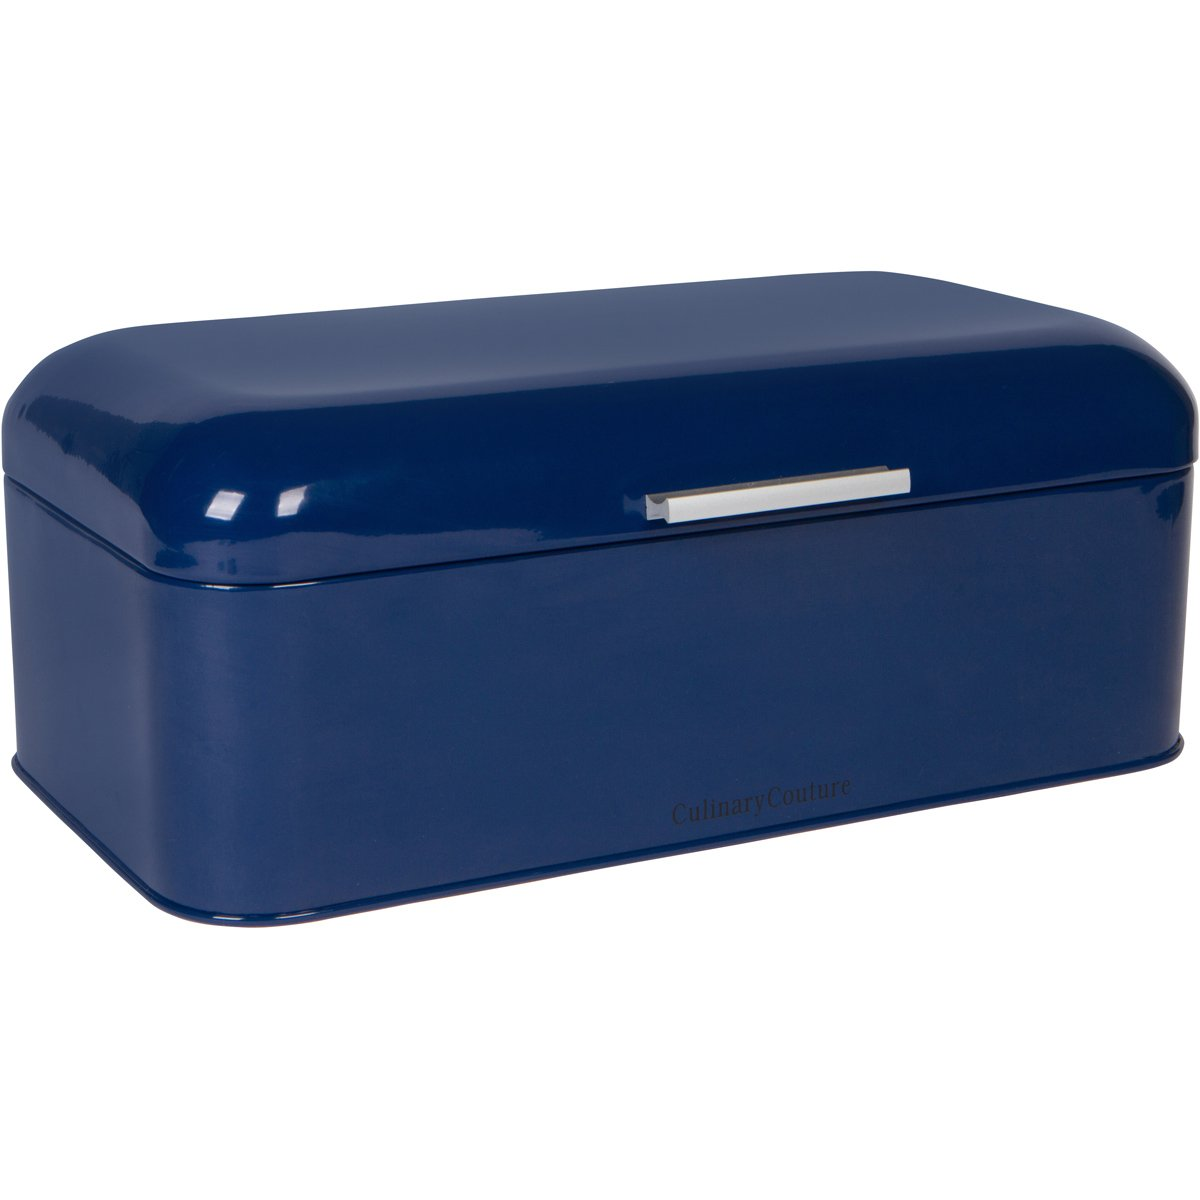 "Large Blue Bread Box - Powder Coated Stainless Steel - Extra Large Bin for Loaves, Bagels & More: 16.5"" x 8.9"" x 6.5"" 